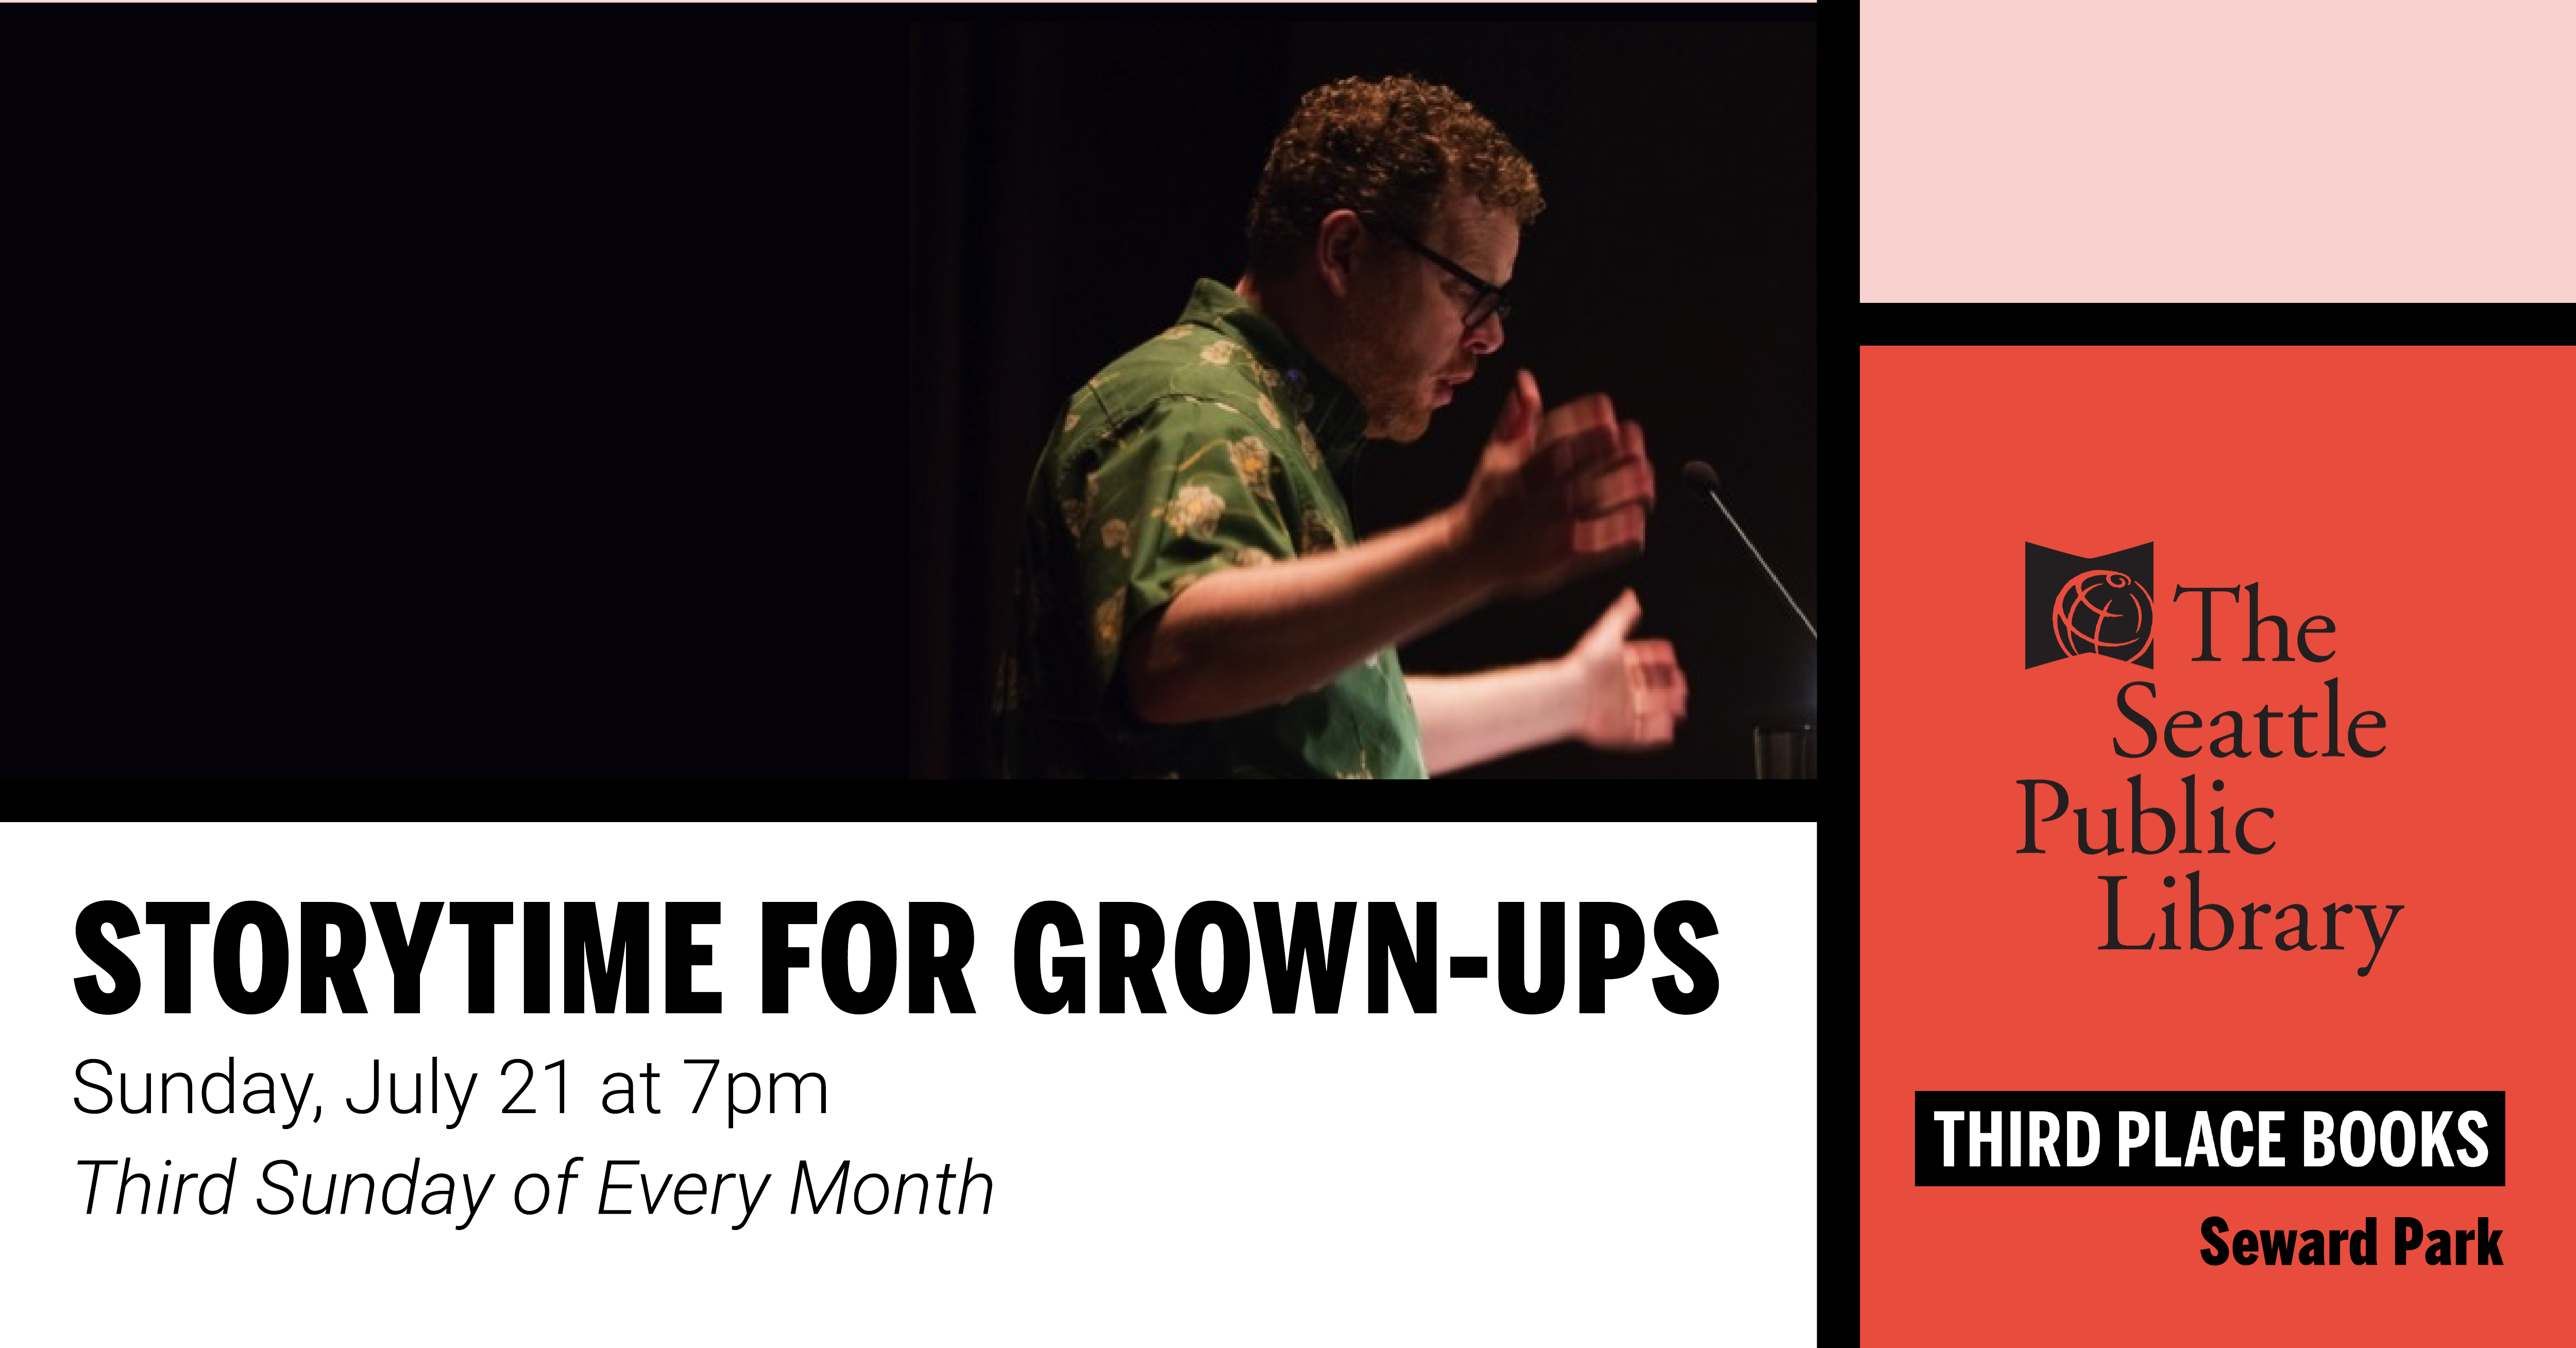 Story Time for Grown Ups on Sunday, July 21 at 7pm